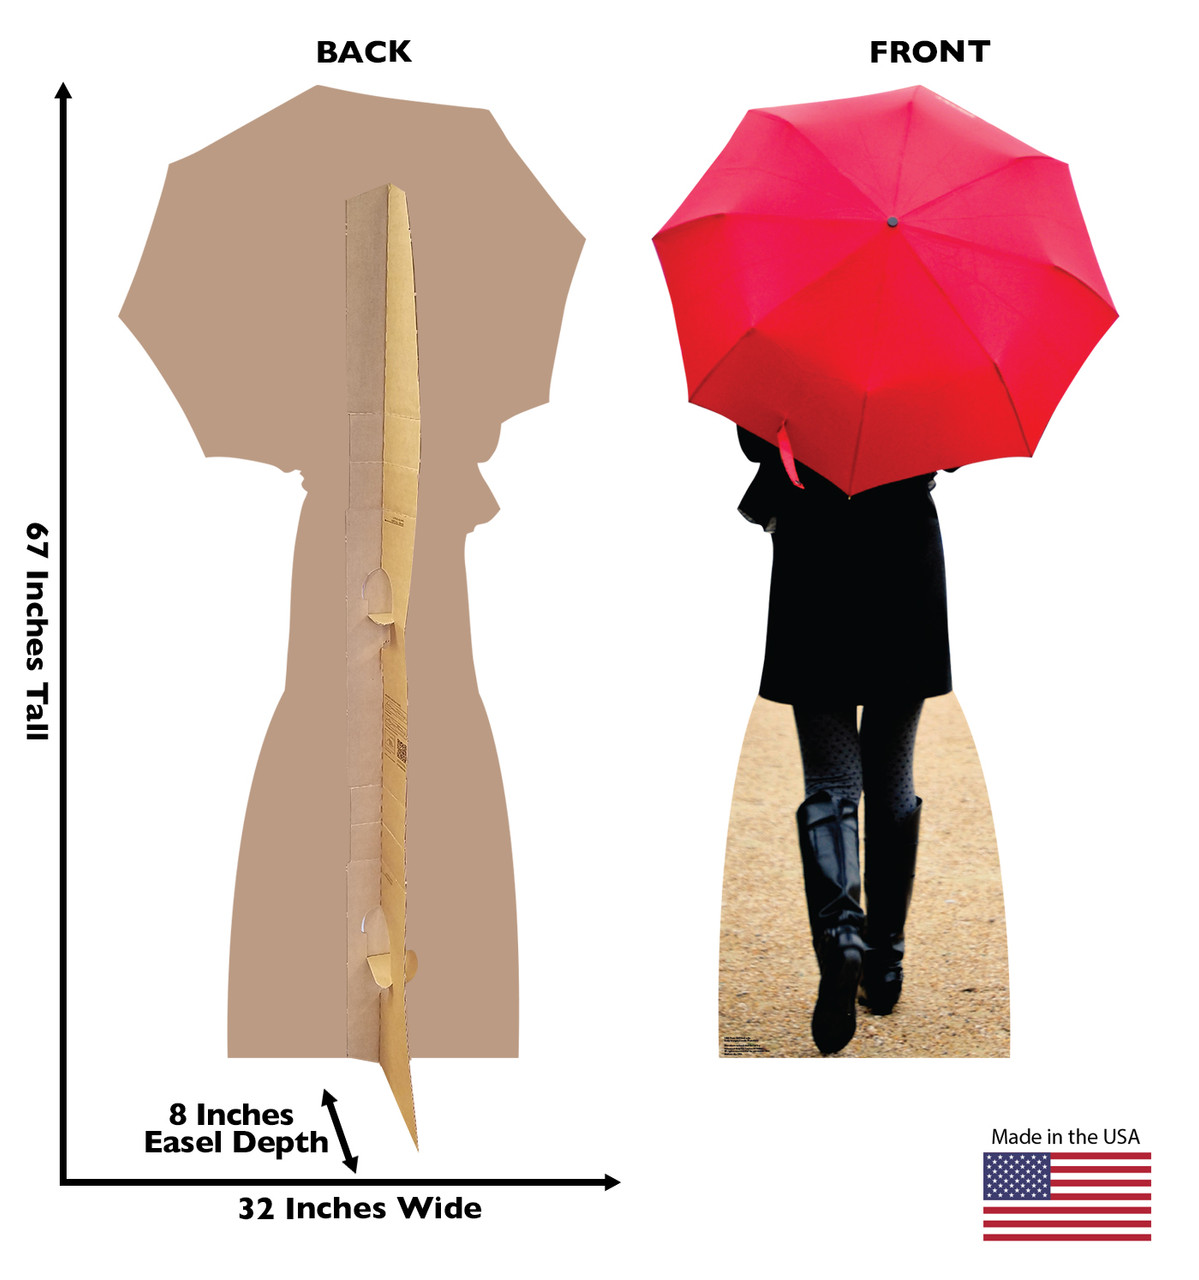 Life-size Paris Red Umbrella Cardboard Standup | Cardboard Cutout